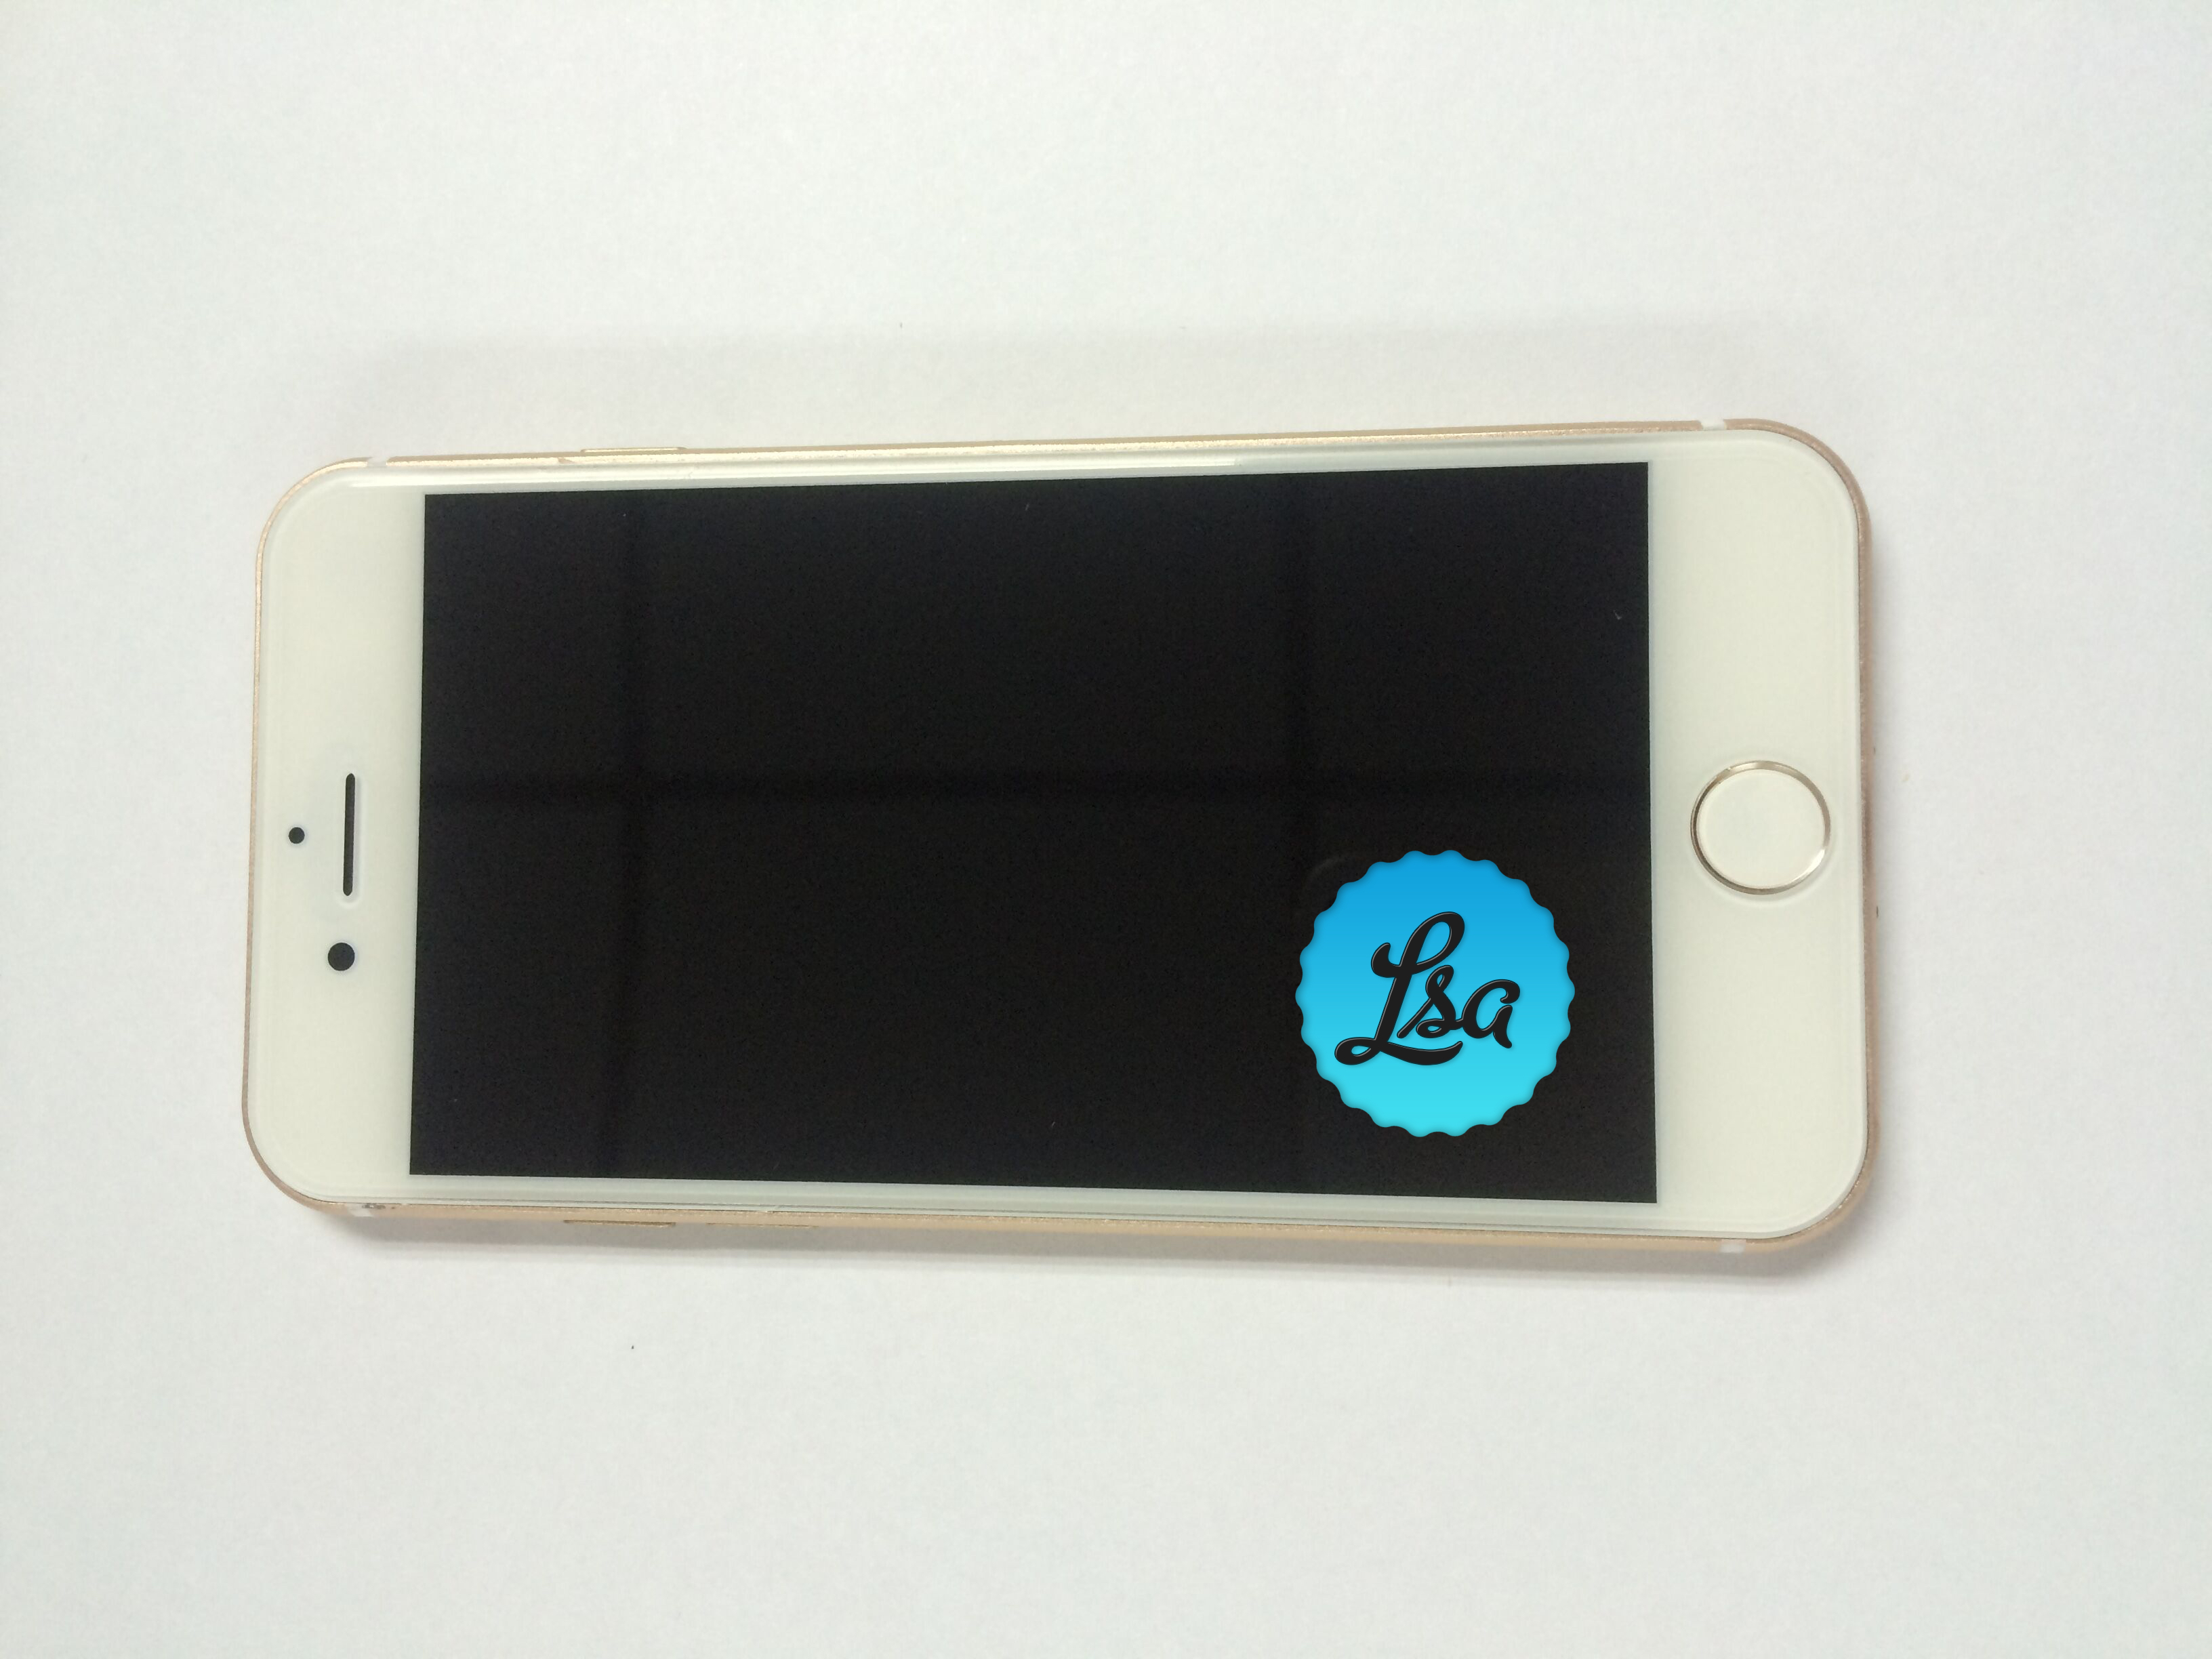 iPhone 7 LsA